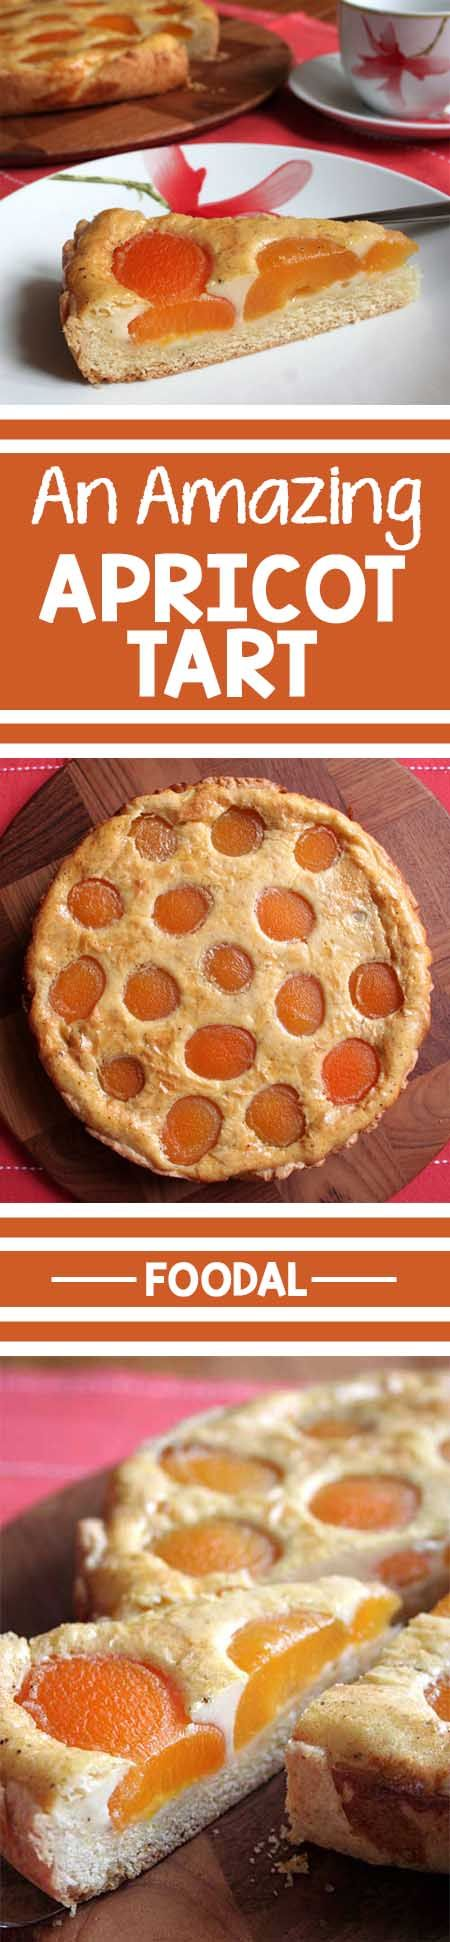 A beautiful, tasty apricot tart from Germany with a butter crust and a vanilla custard filling. It's so simple to make, you just have to try it at home! Read more and get the recipe now: http://foodal.com/recipes/desserts/moms-best-apricot-tart/